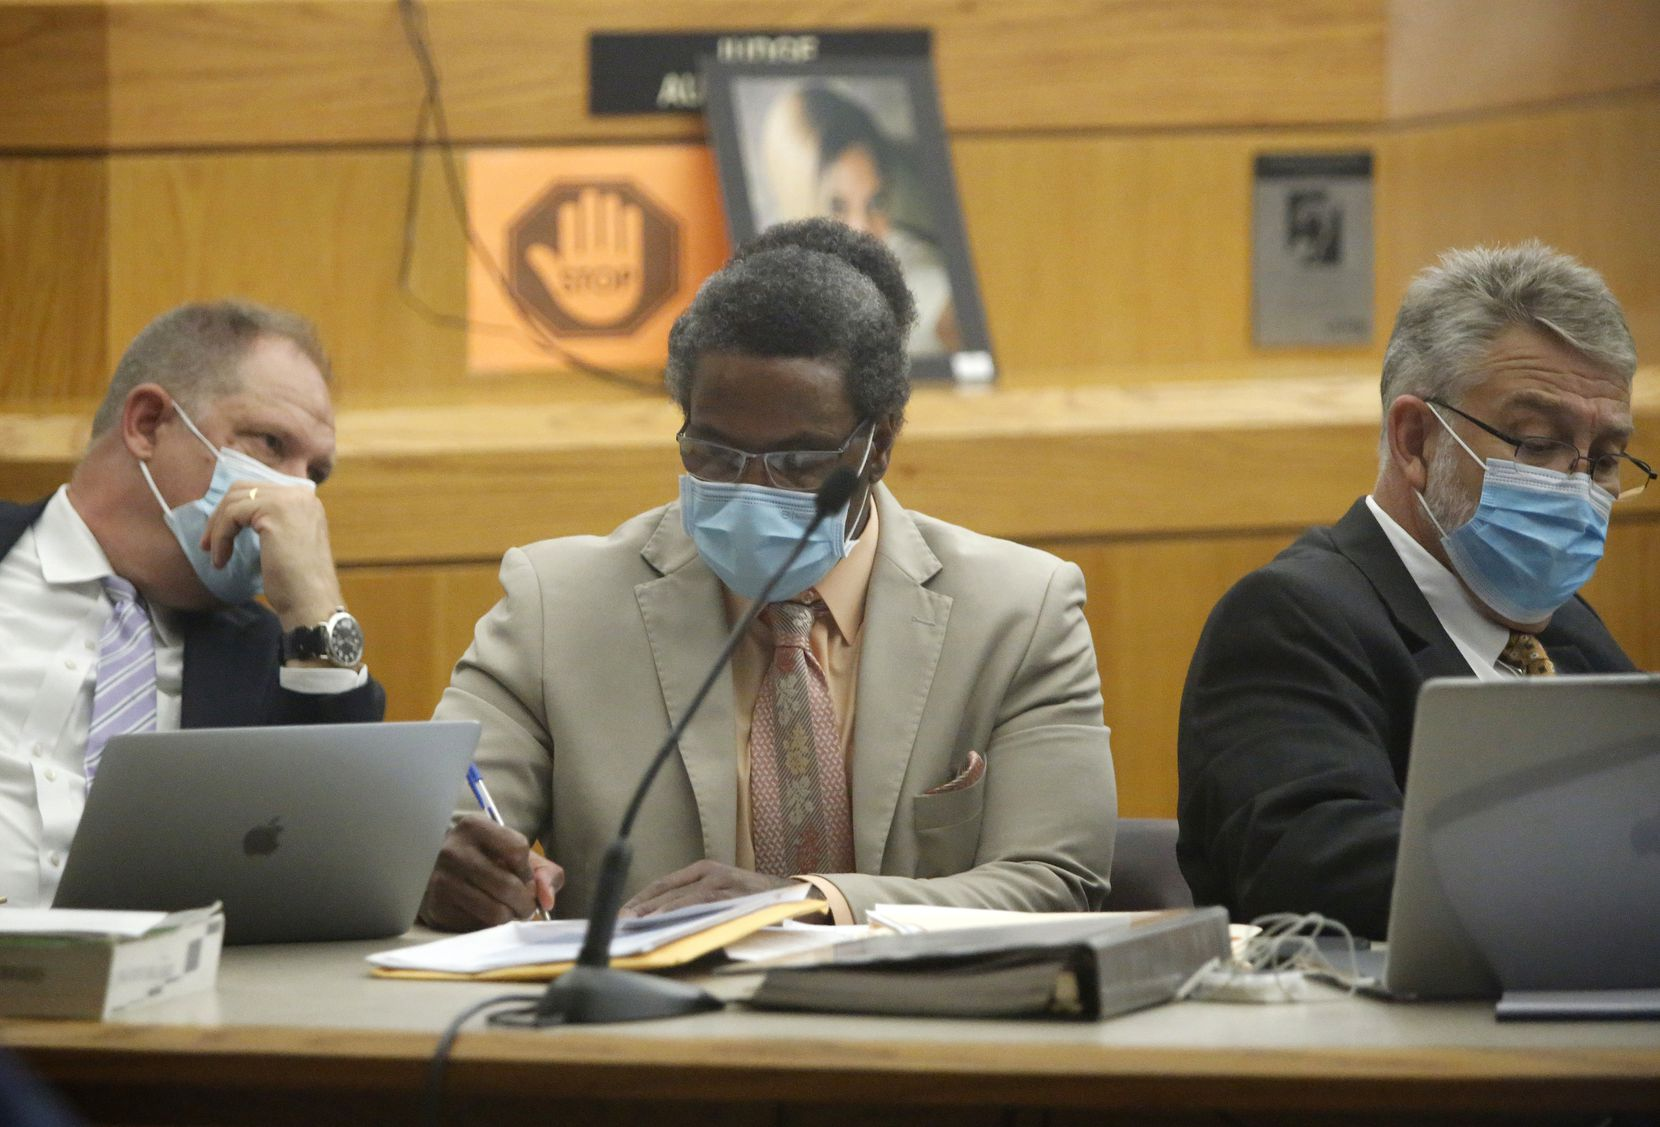 Victor Williams (center) listens as he sits with his defense team during his trial at the Frank Crowley Courthouse in Dallas.